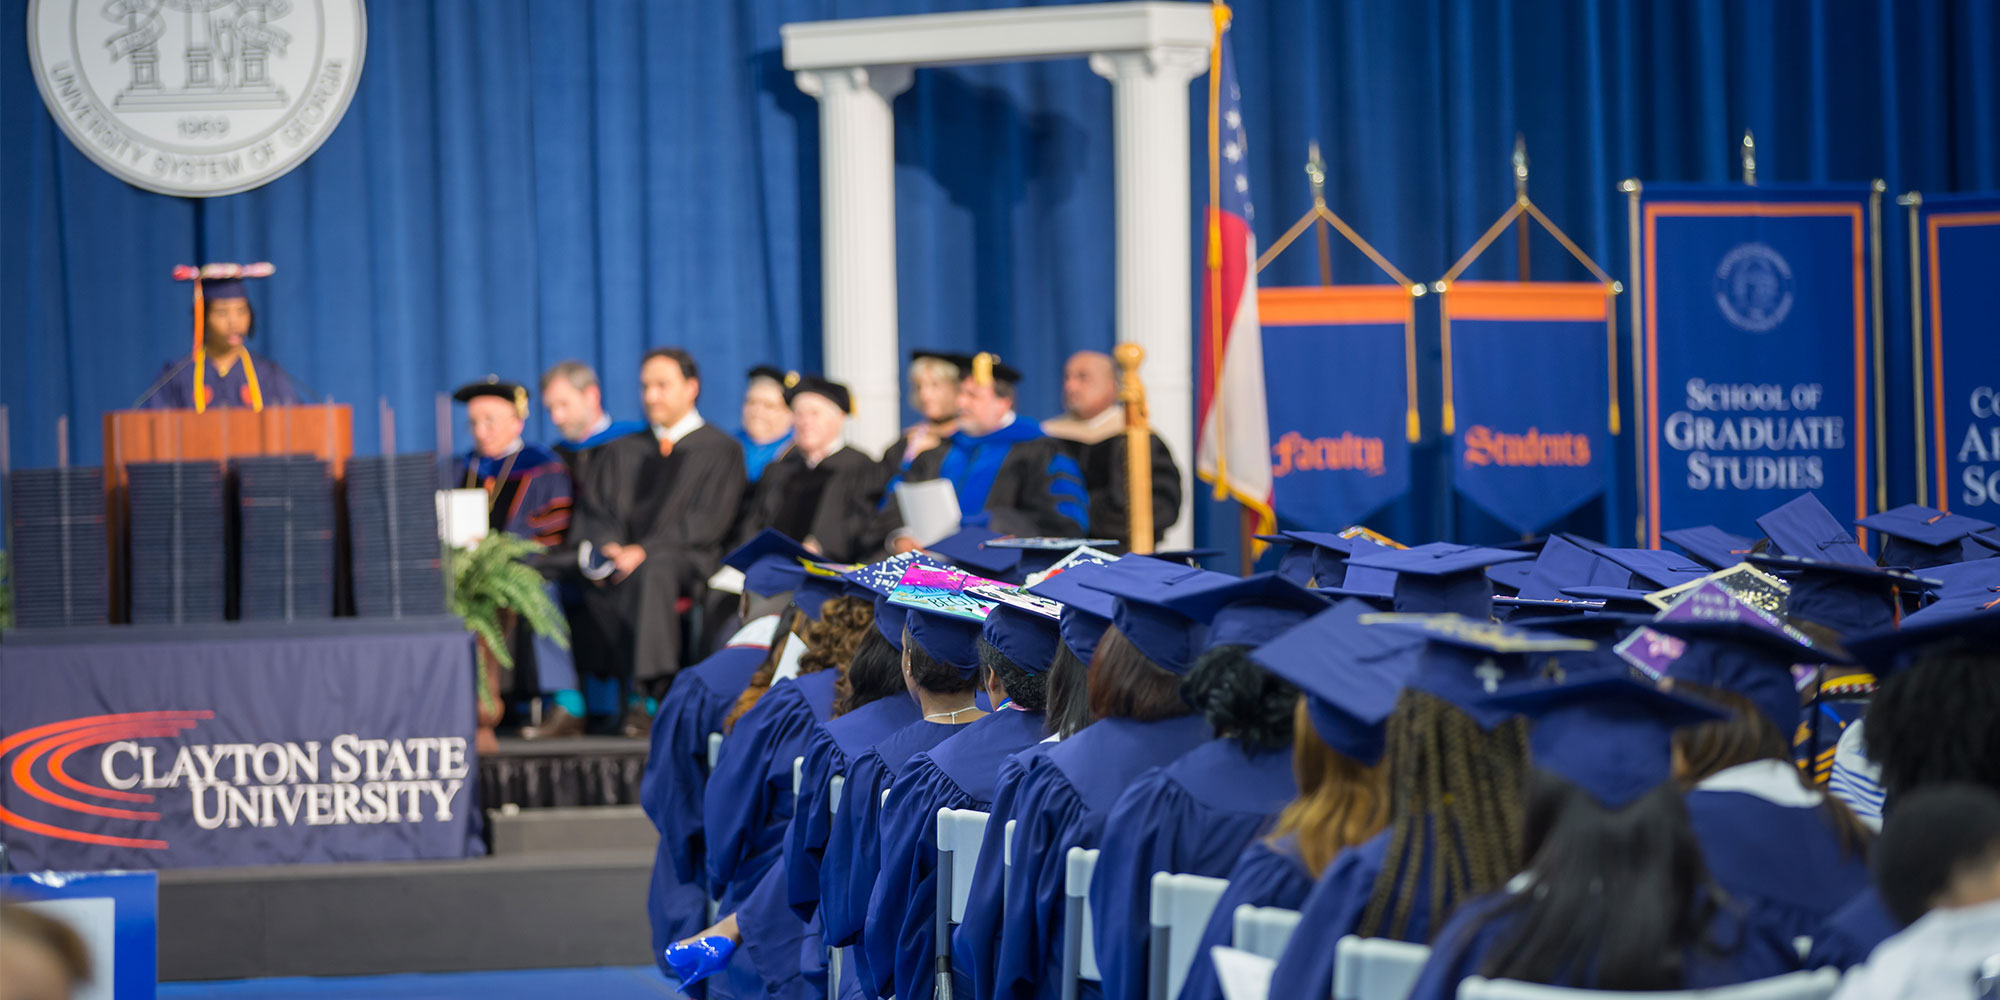 Commencement banner image